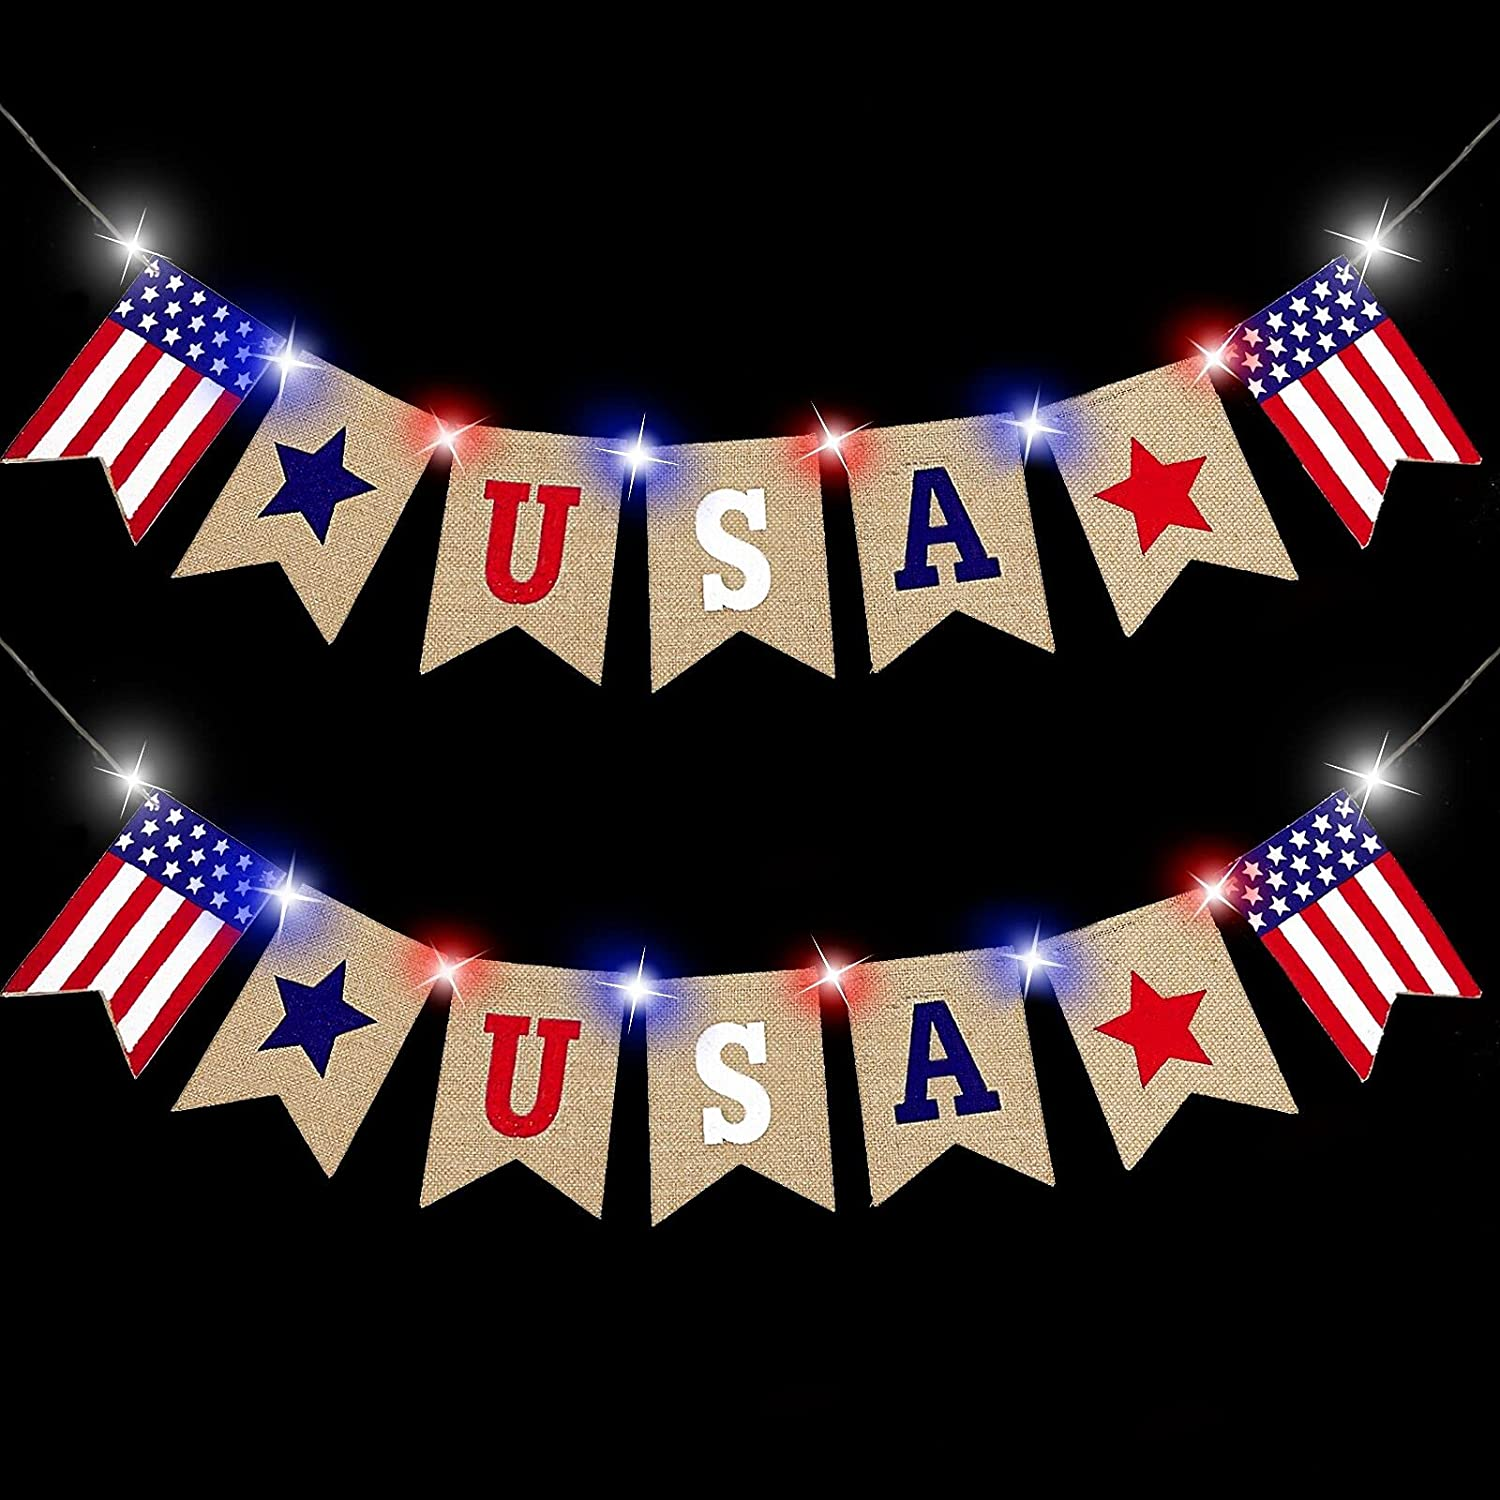 2 Pack 4th of July Decoration Burlap Banner with Lights, American Flag US Banner Bunting Red White Blue Lights Patriotic Decoration for Home Indoor Outdoor Independence Day Party Supplies